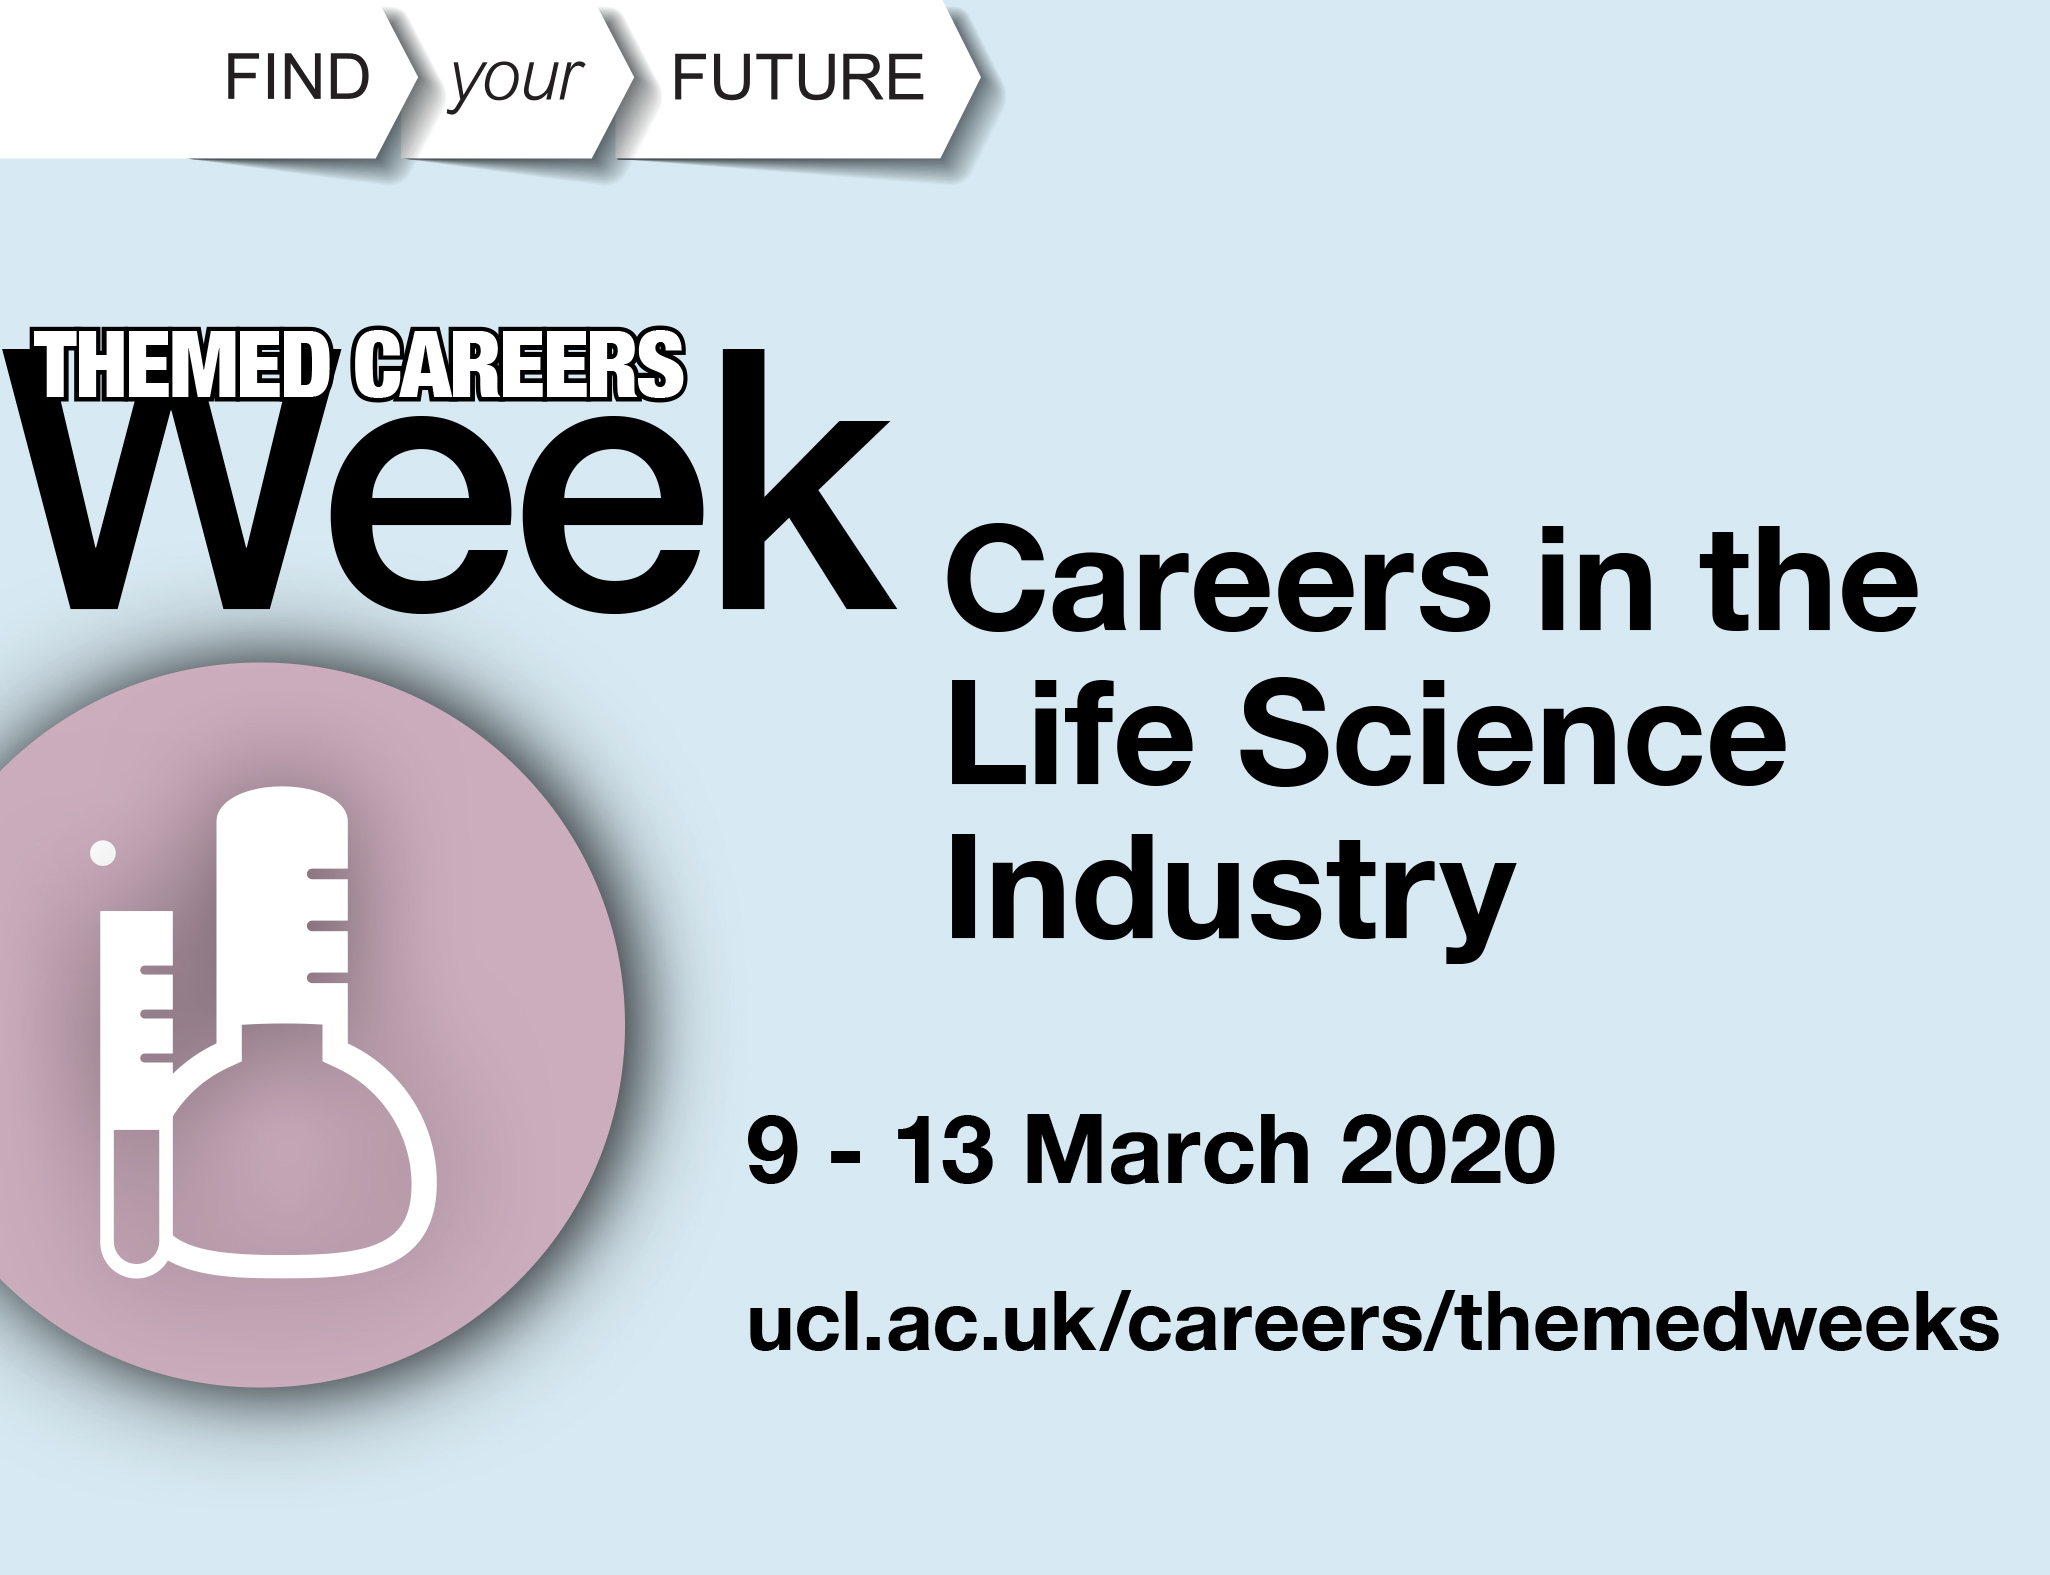 Careers in the life science industry, 9 March to 2020, ucl.ac.uk/careers/themedweeks